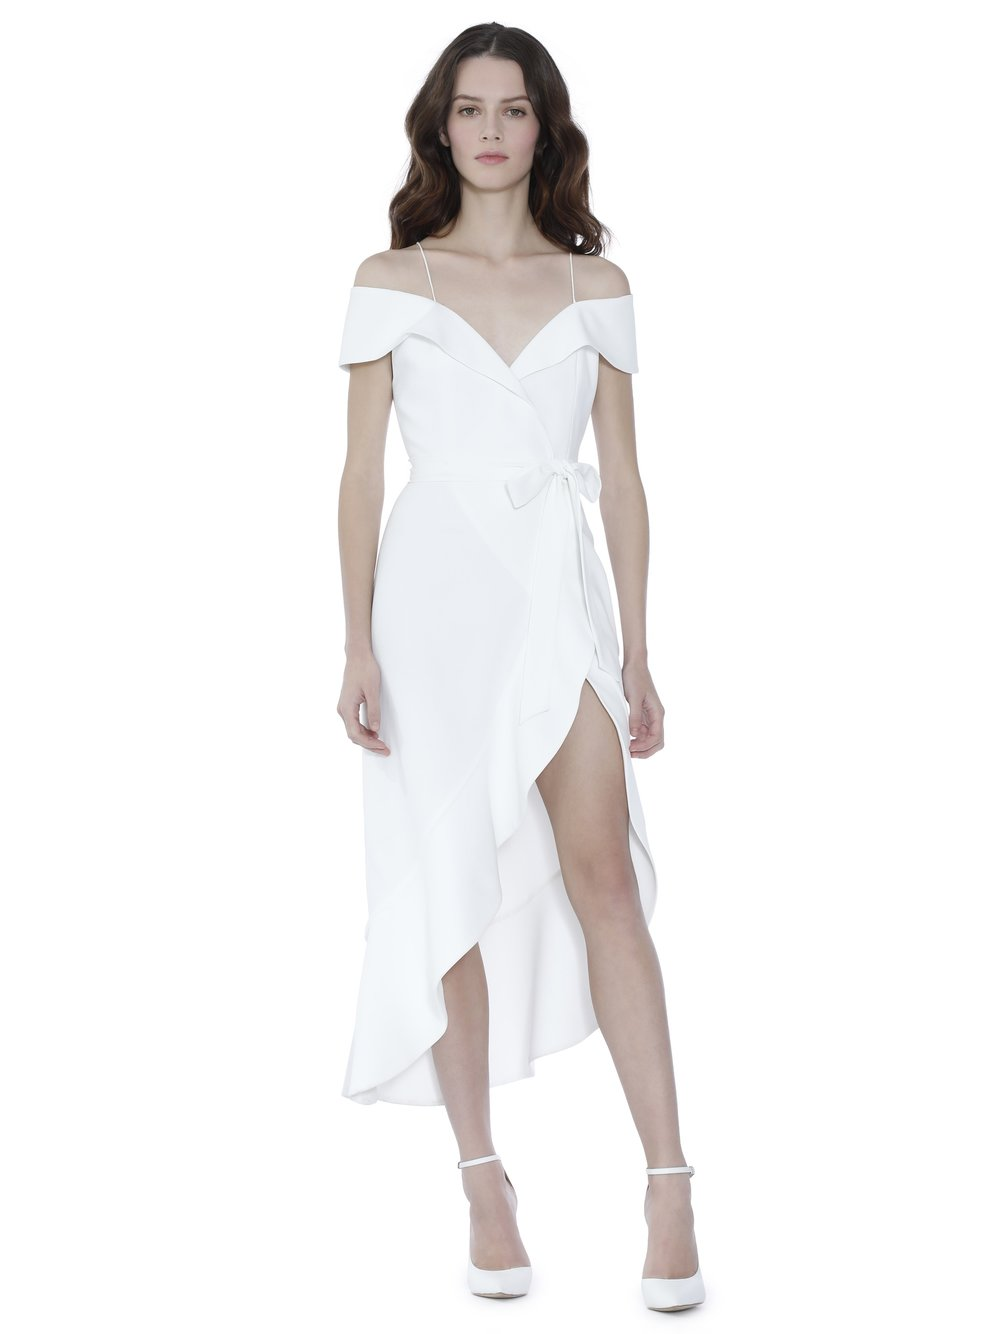 alice_and_olivia_JOSIEOFFSHOULDRRUFFLEWRAPDRESS_OFFWHITE_888819822446_PRODUCT_01--1745057137.jpg